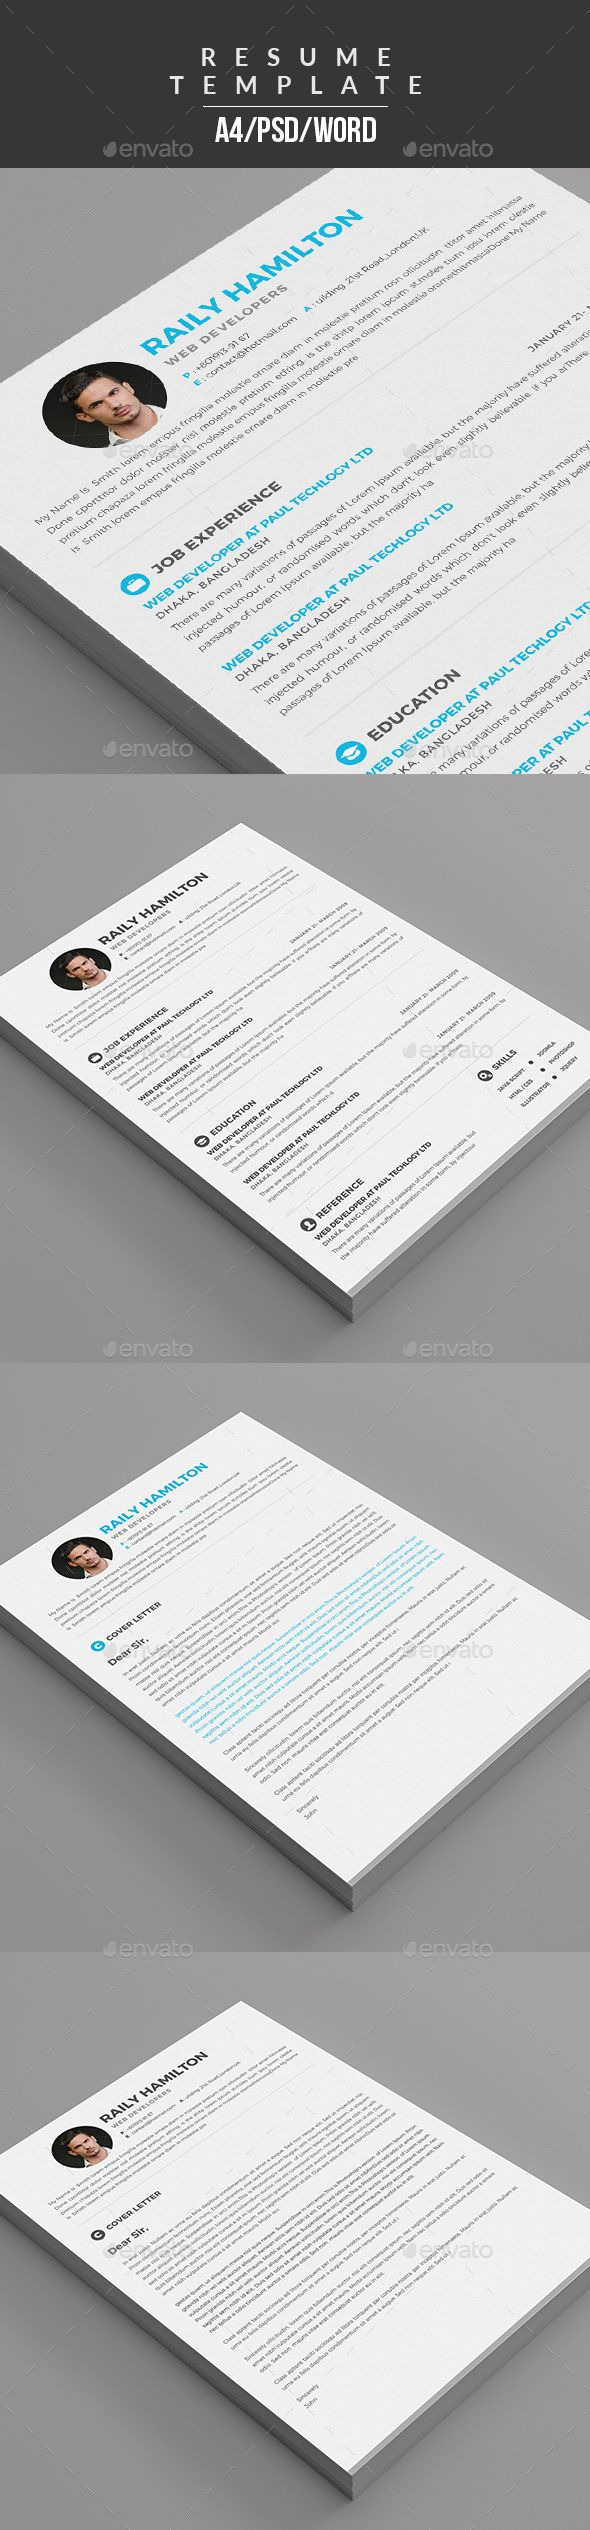 Resume & Cover Letter Template PSD, ...